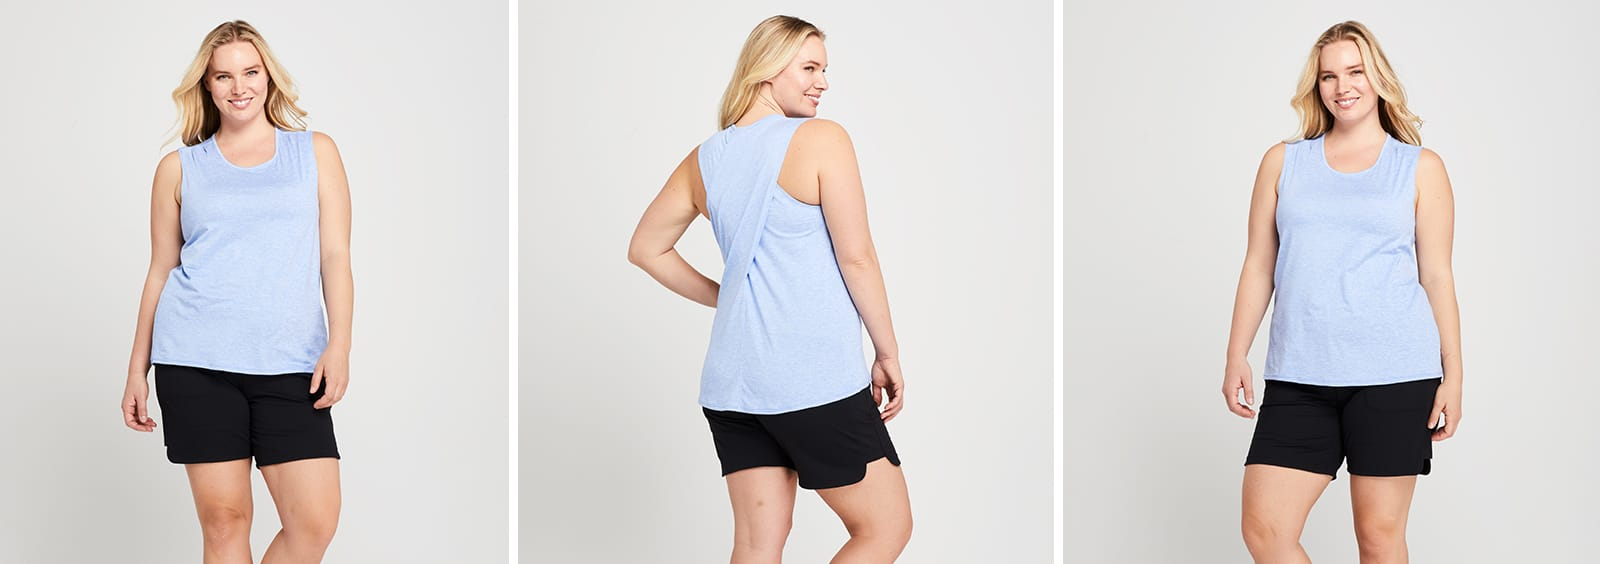 What Are the Best Plus Size Clothes for Working Out?